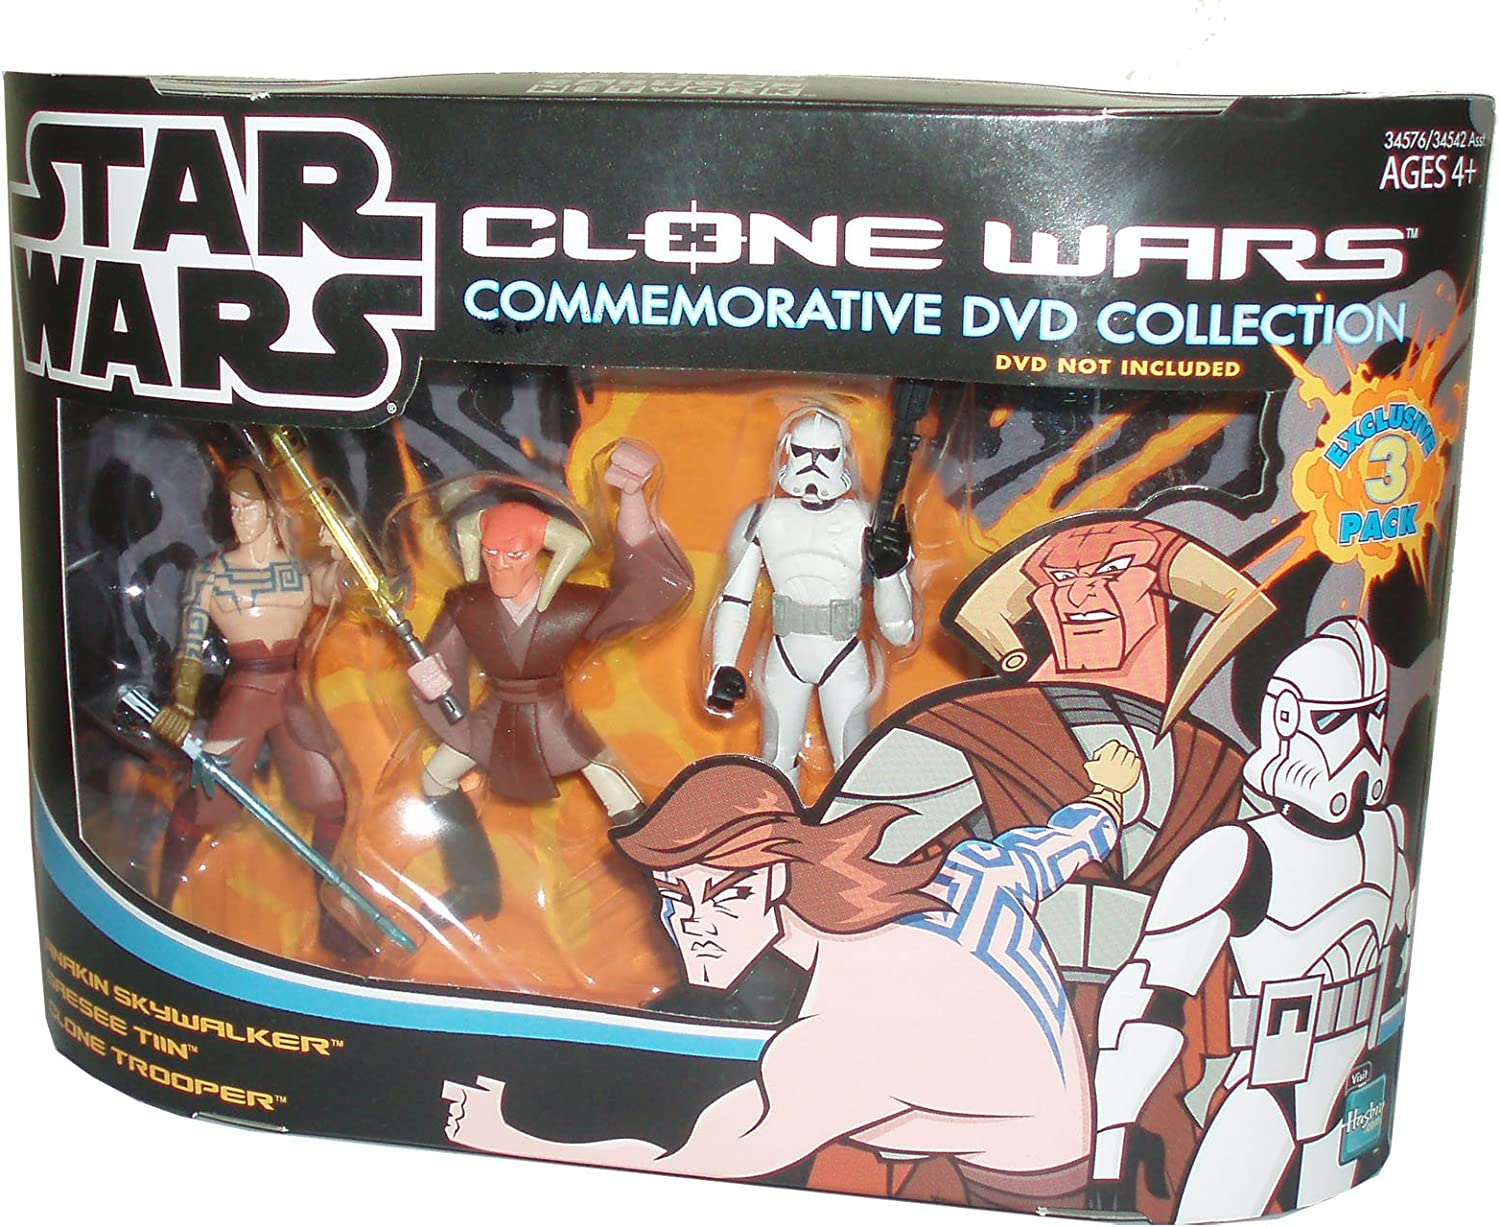 Amazon Com Cartoon Network Year 2005 Star Wars Clone Wars Commemorative Dvd Collection Animated Series Exclusive 3 Pack 4 Inch Tall Action Figure Set Anakin Skywalker With Blue Lightsaber Saesee Tin With